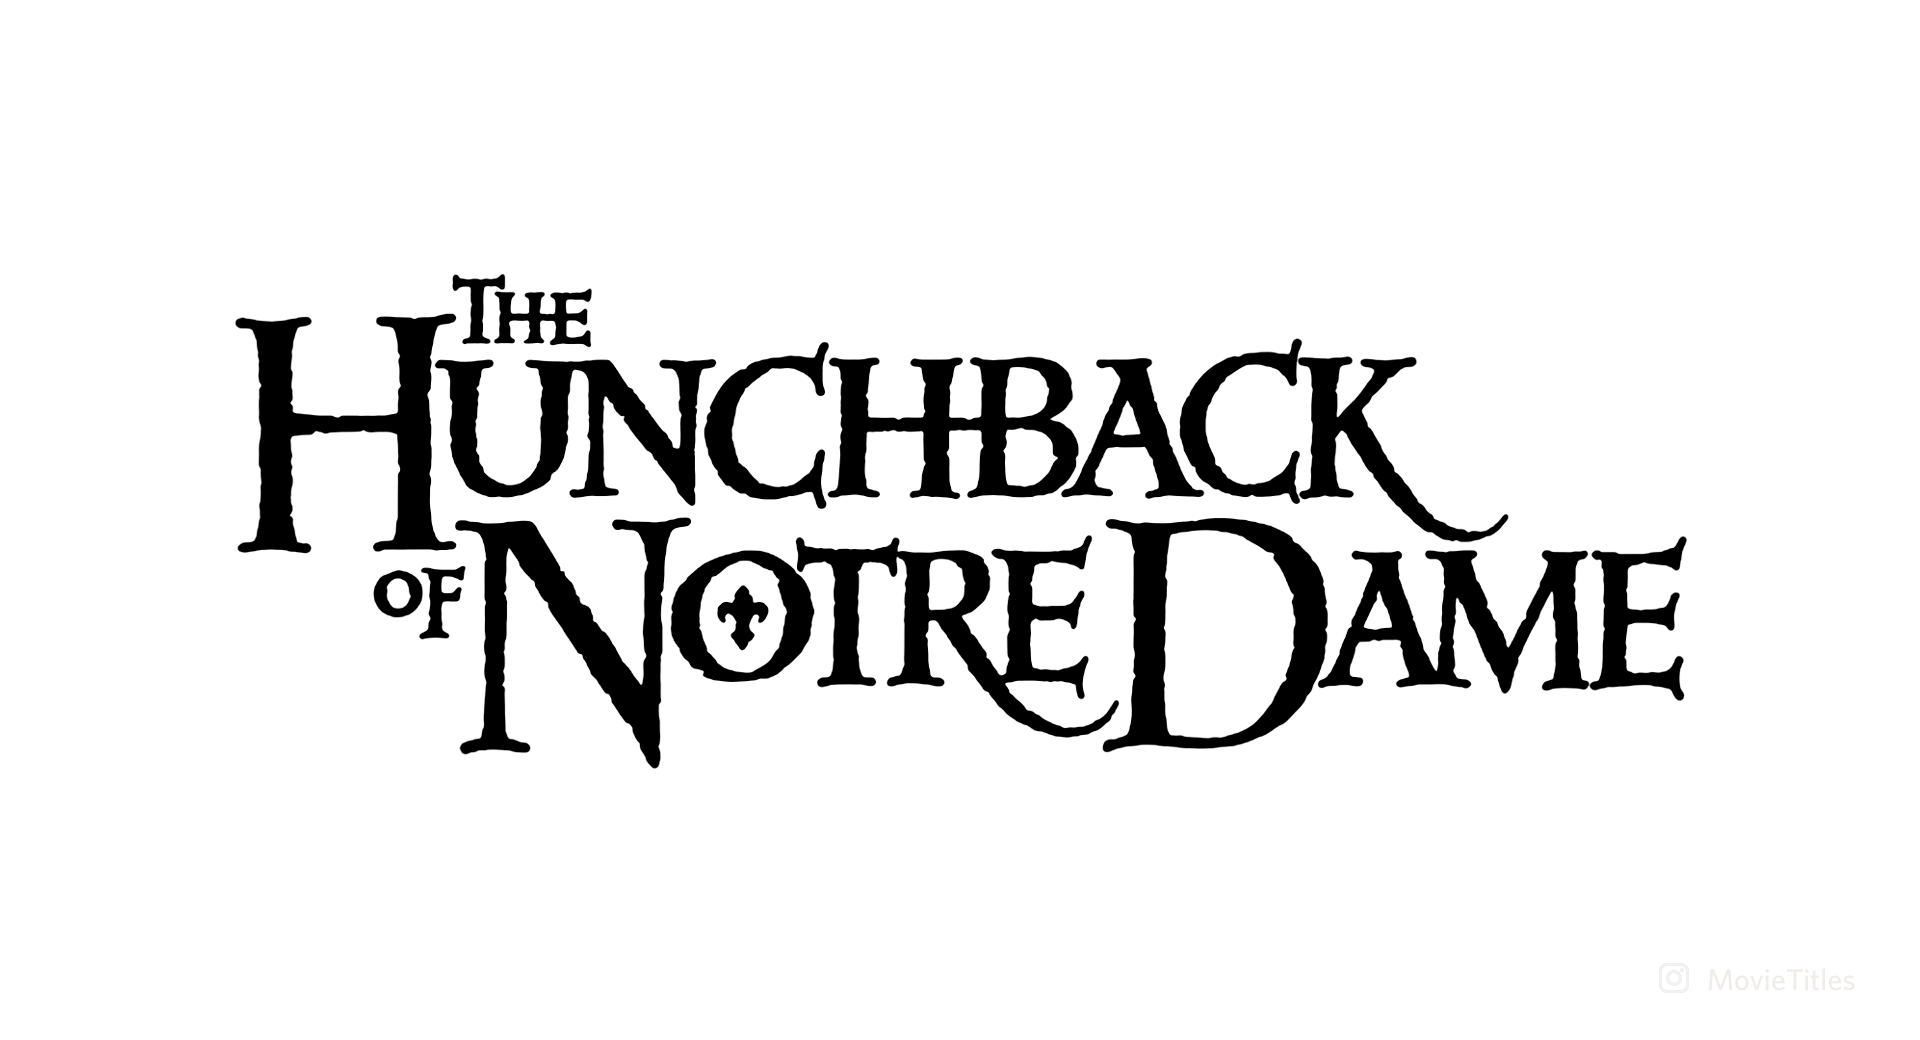 the hunchback of notre dame 1996 movie title designed by susan Best Foot Forward 1943 the hunchback of notre dame 1996 movie title designed by susan bradley lettering typography type cinema disney waltdisney